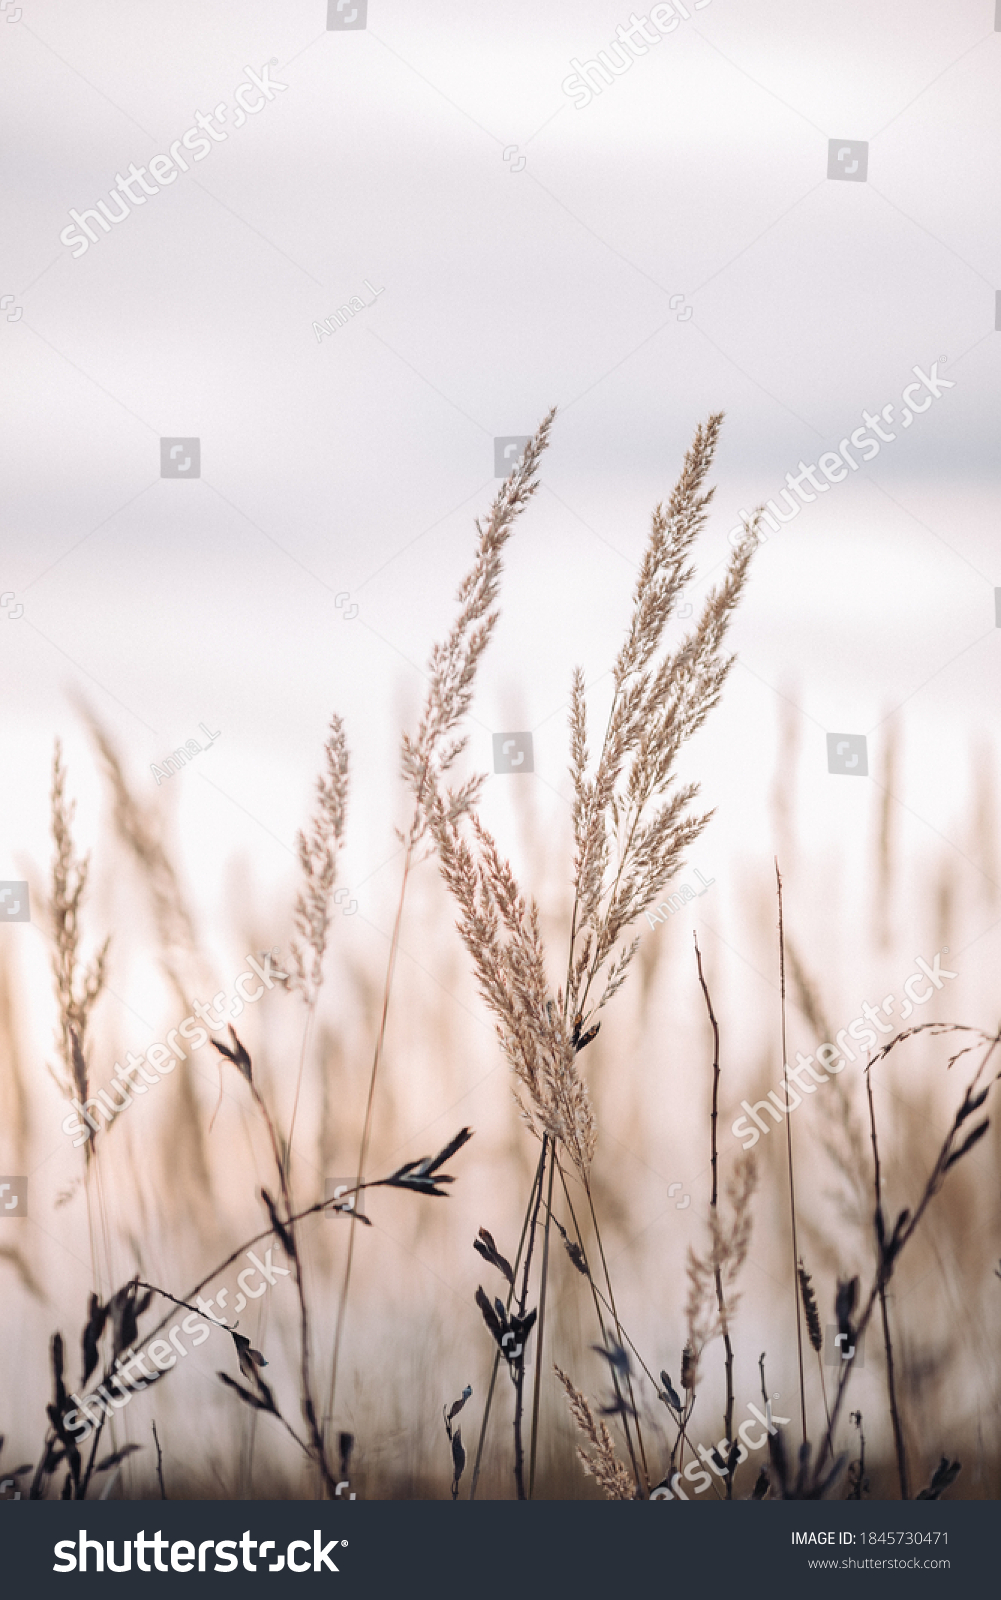 Sunset in the field. Close view of grass stems against dusty sky. Calm and natural background #1845730471